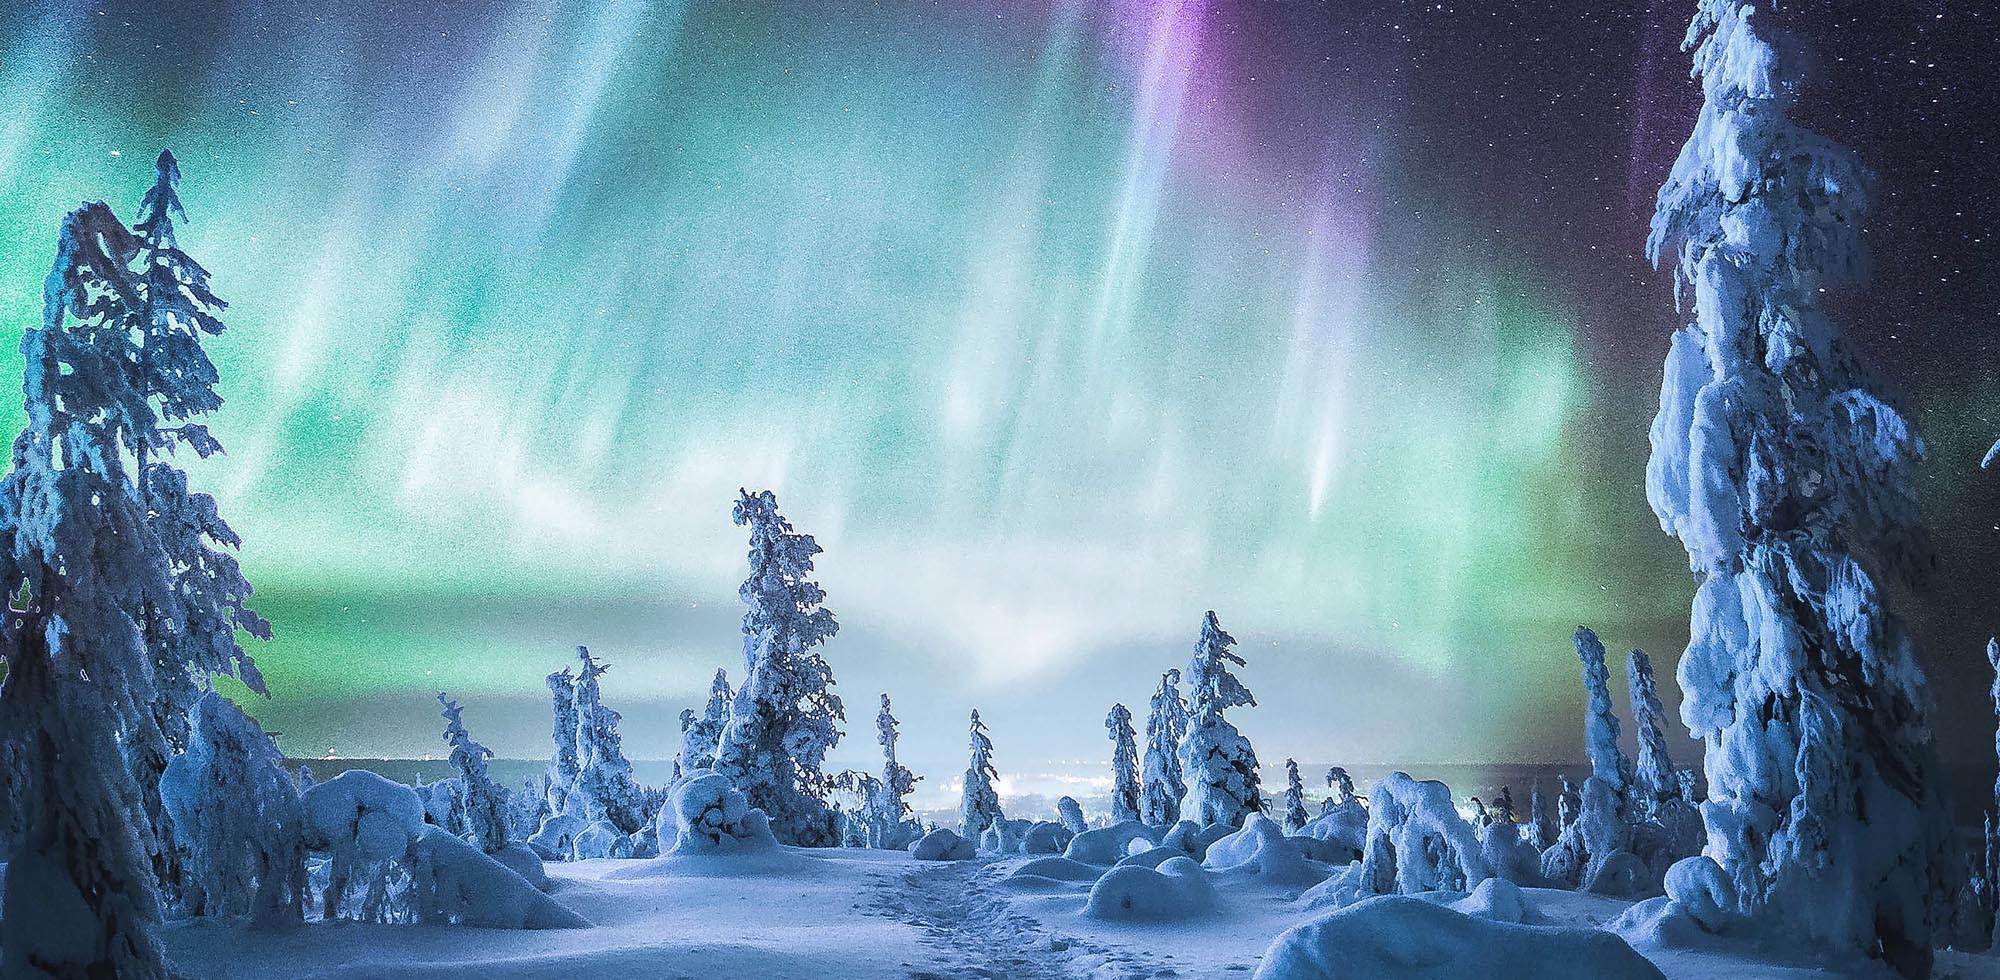 Wonders of the Arctic sky.